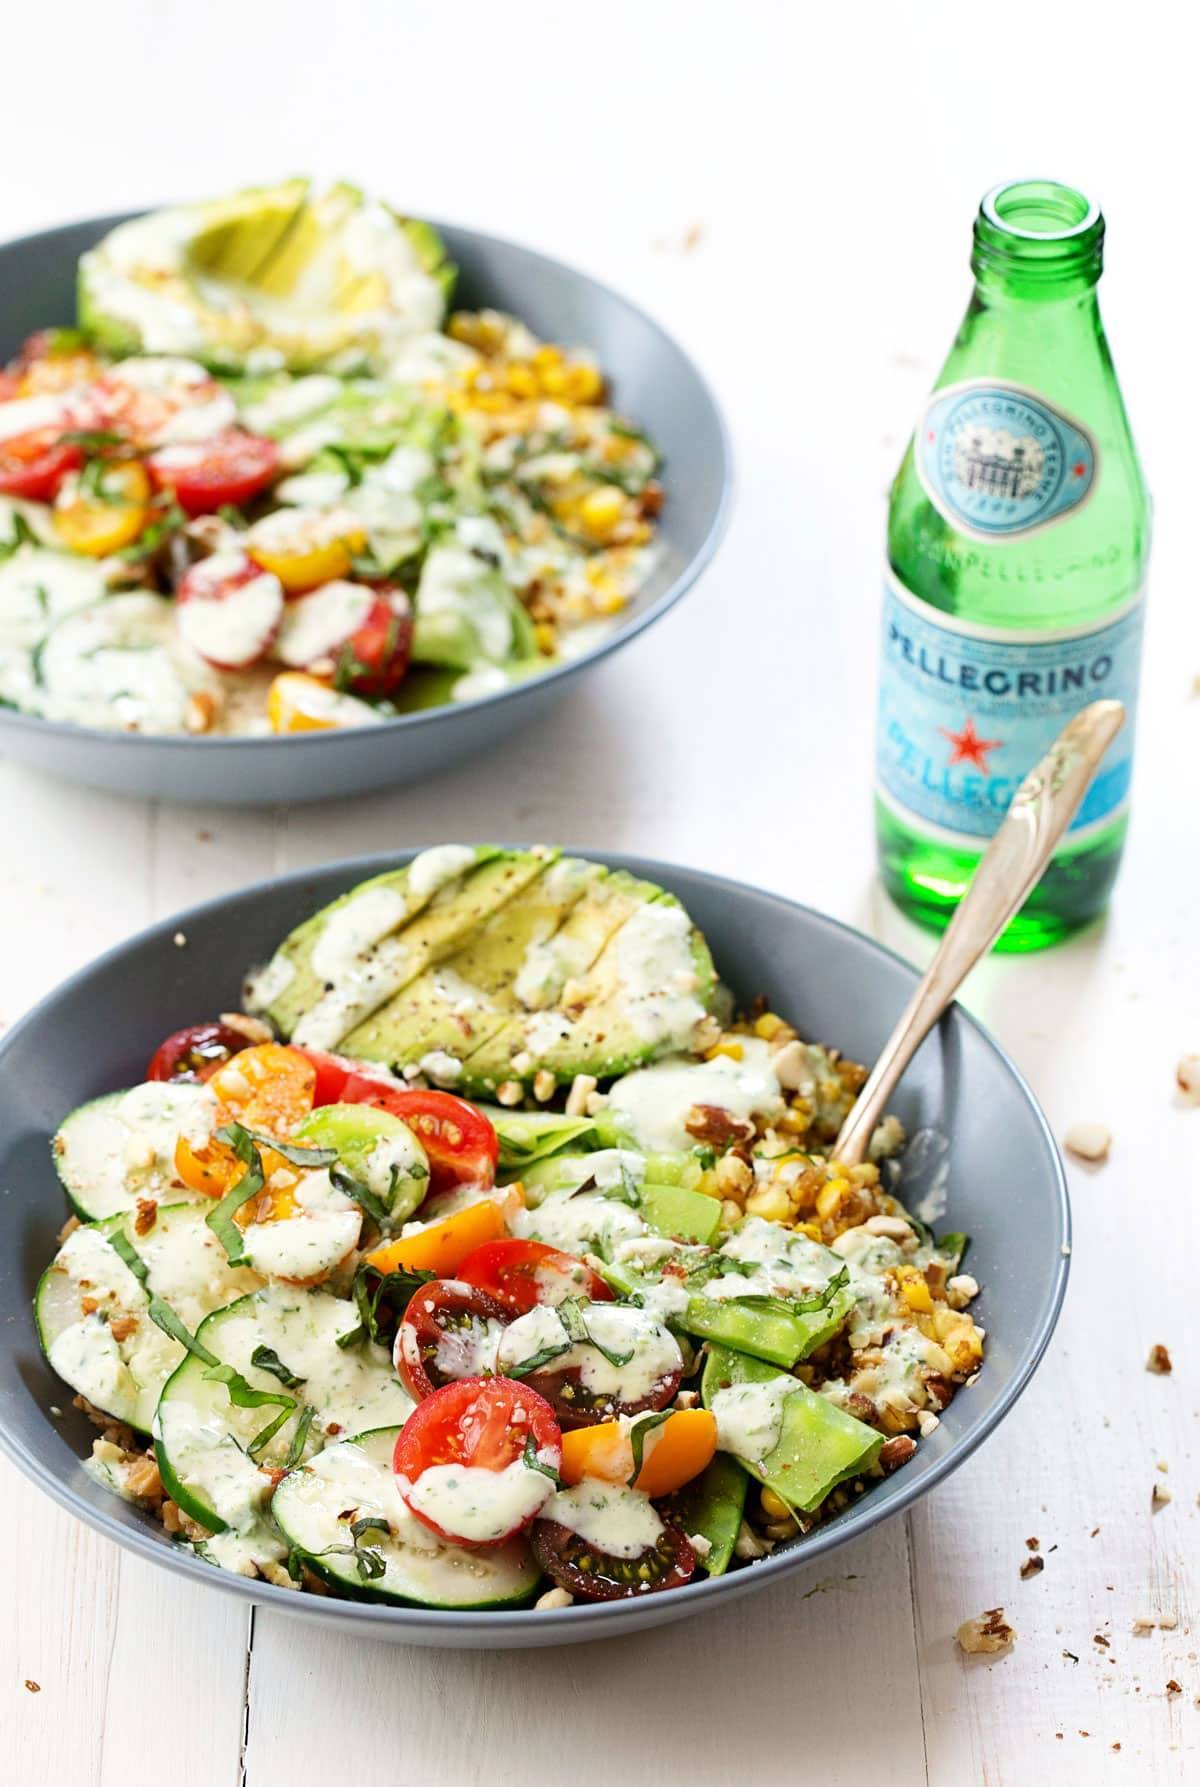 Rainbow Veggie Bowls with Jalapeño Ranch and sparkling water.